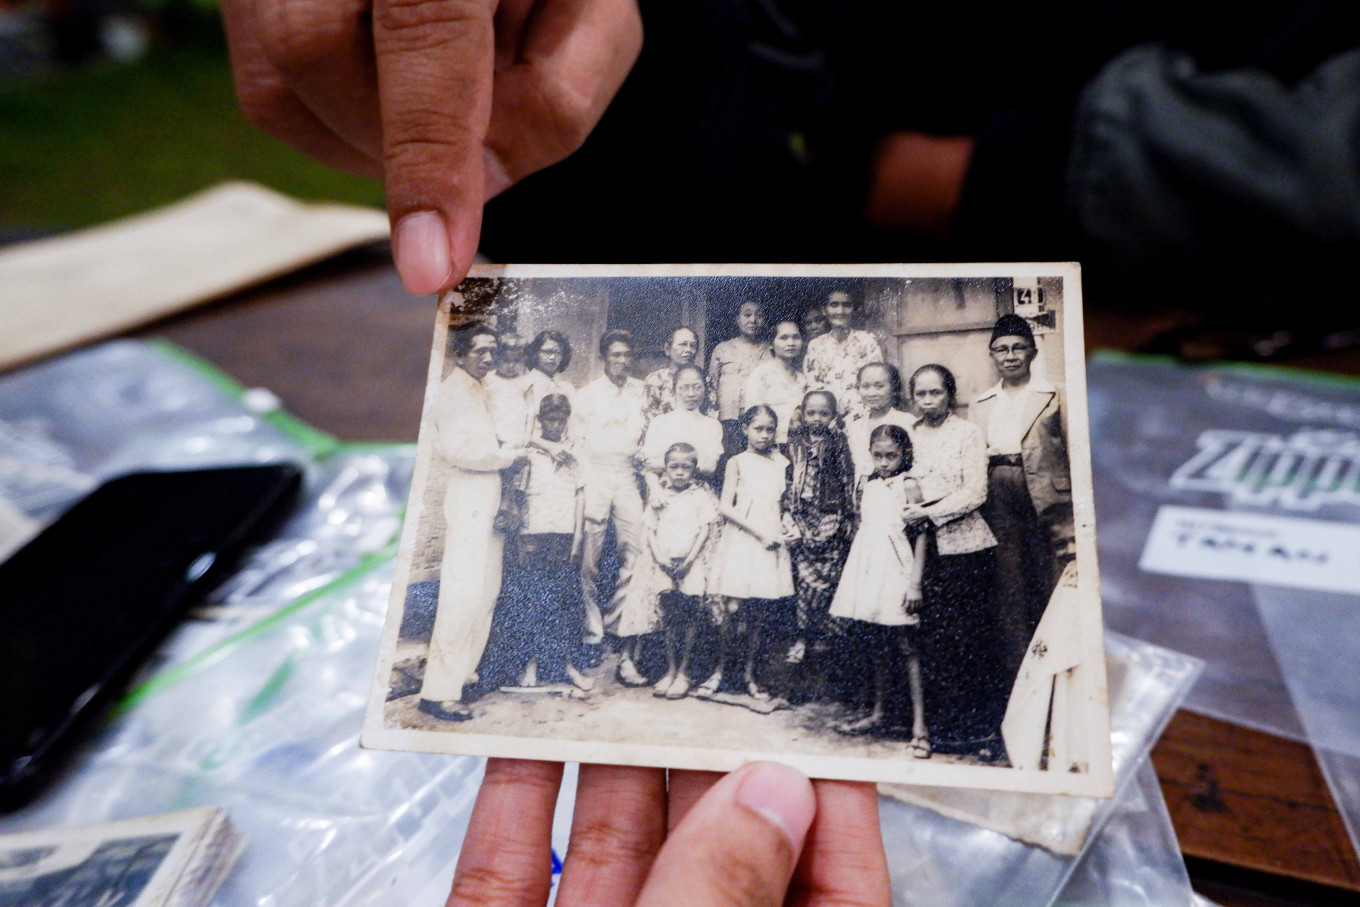 Collective strives to shine the light of truth on Indonesia's 1965 tragedy